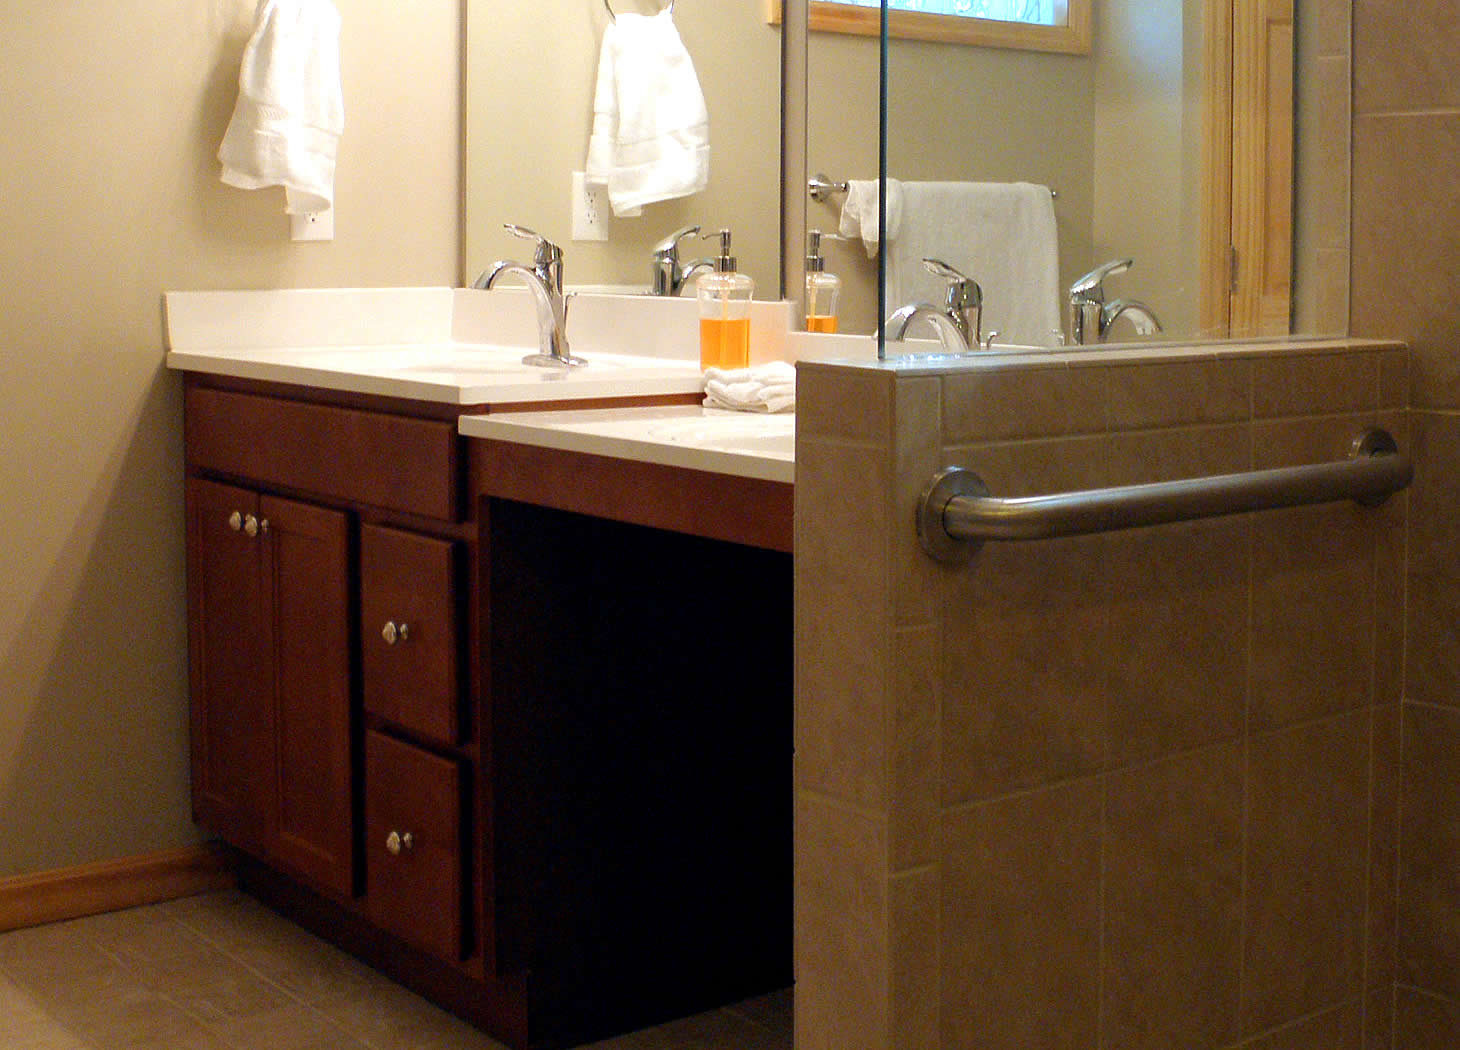 Barrier Free Design Accessible Wheelchair Handicap Remodeling